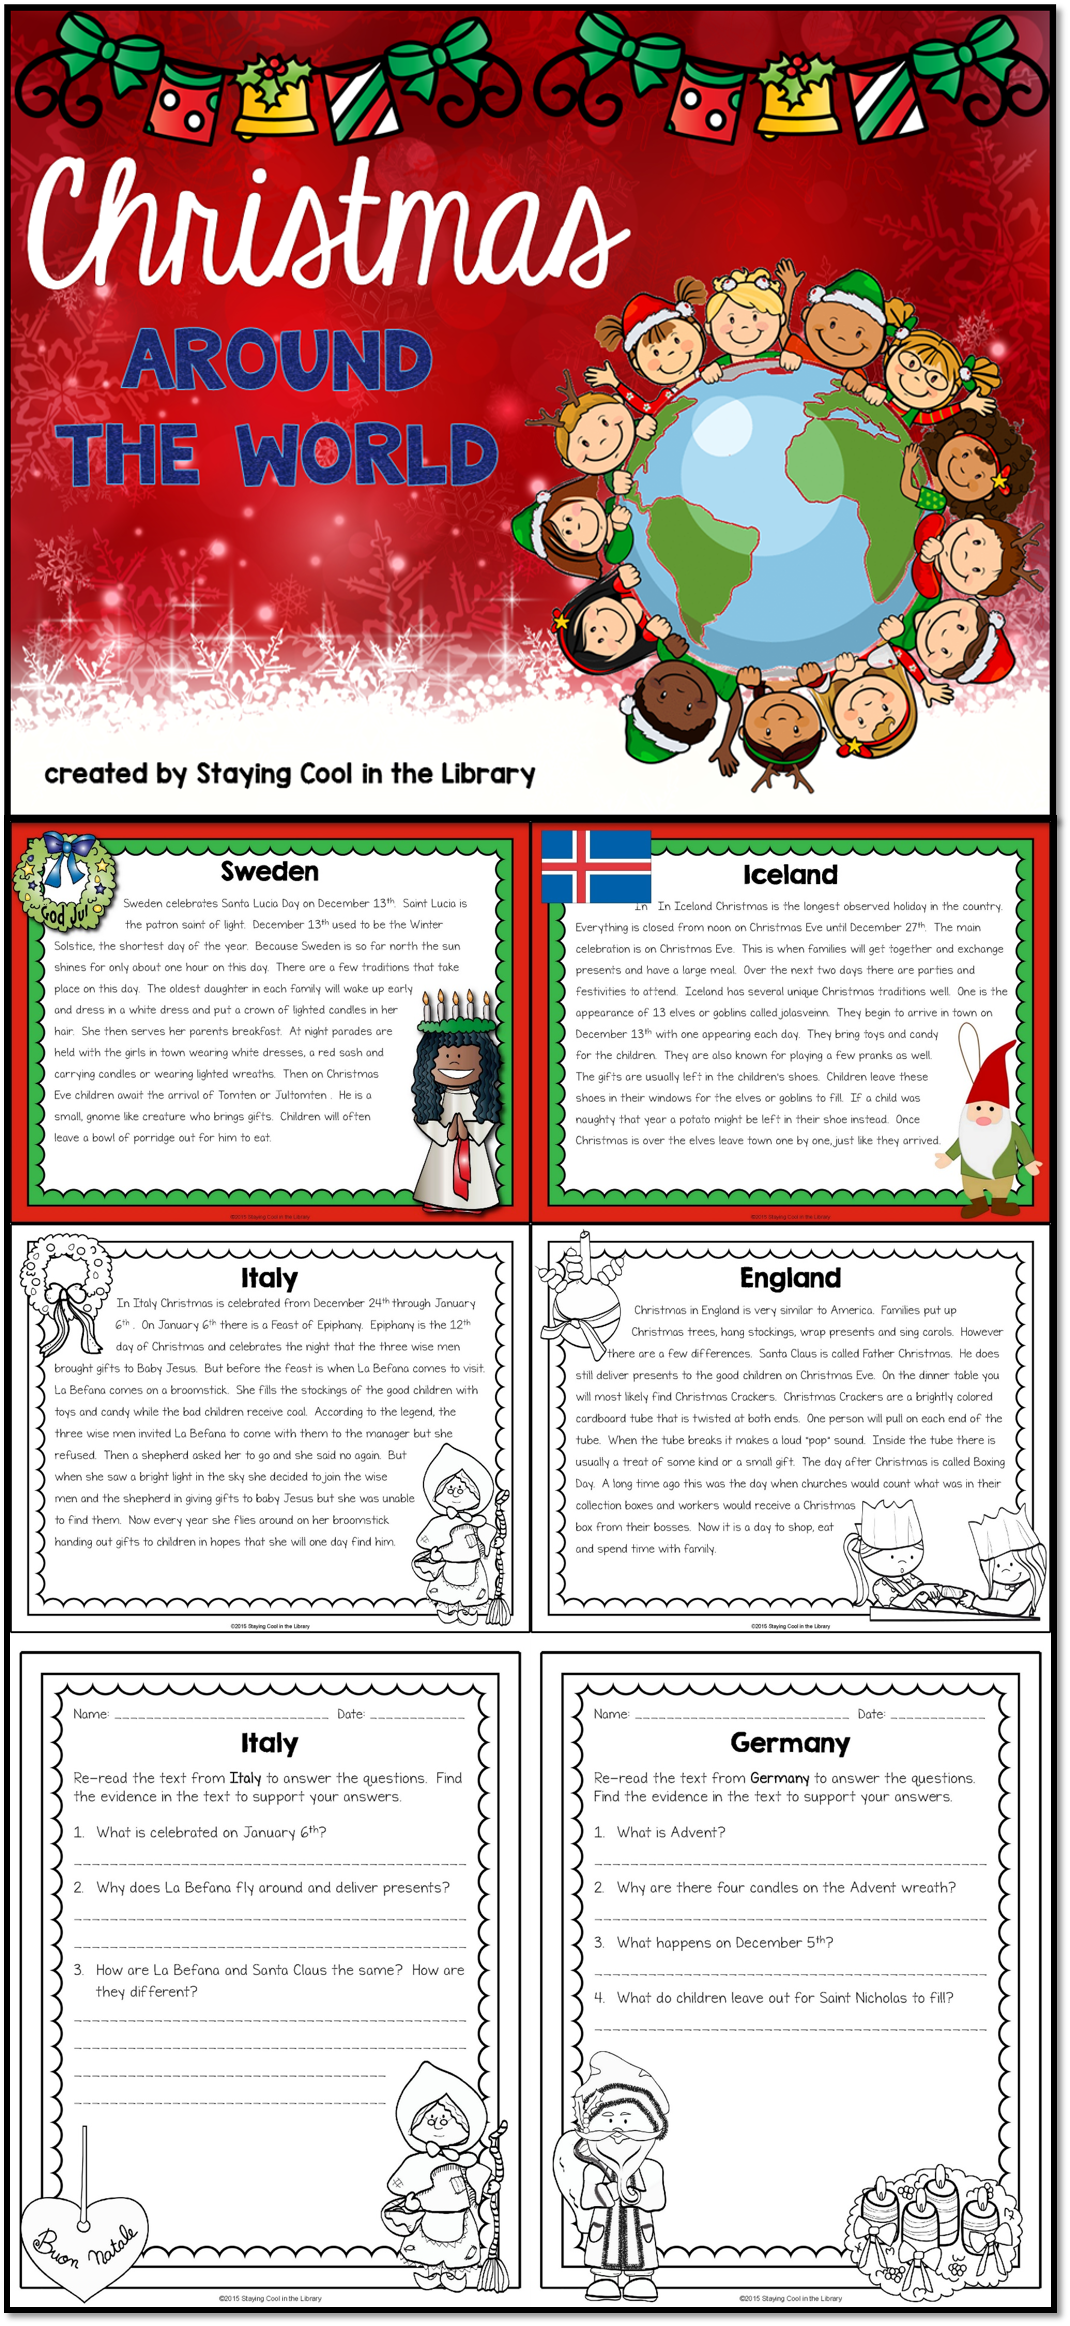 Christmas Around the World Activity Pack Library lesson